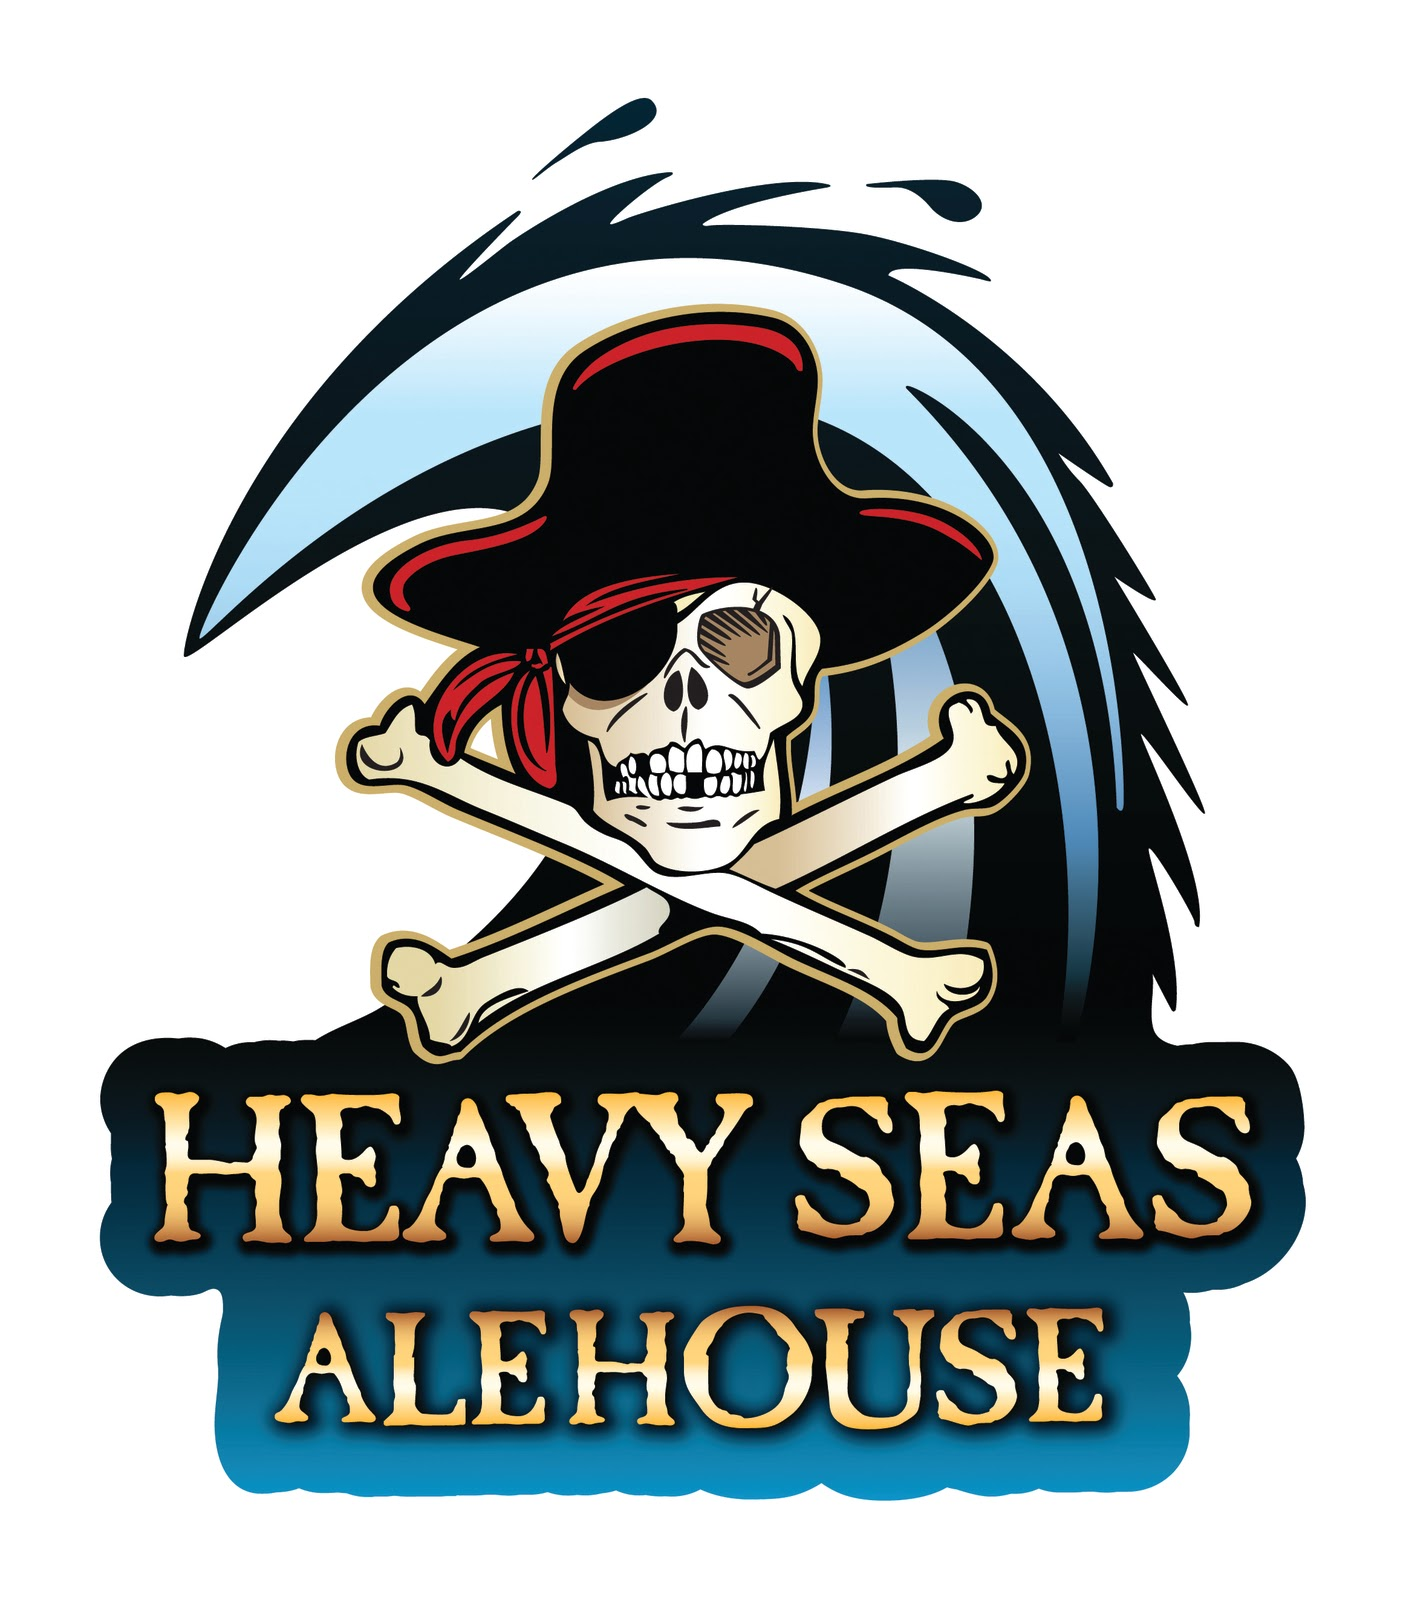 Beer In Baltimore Heavy Seas Ale House Coming To Harbor East